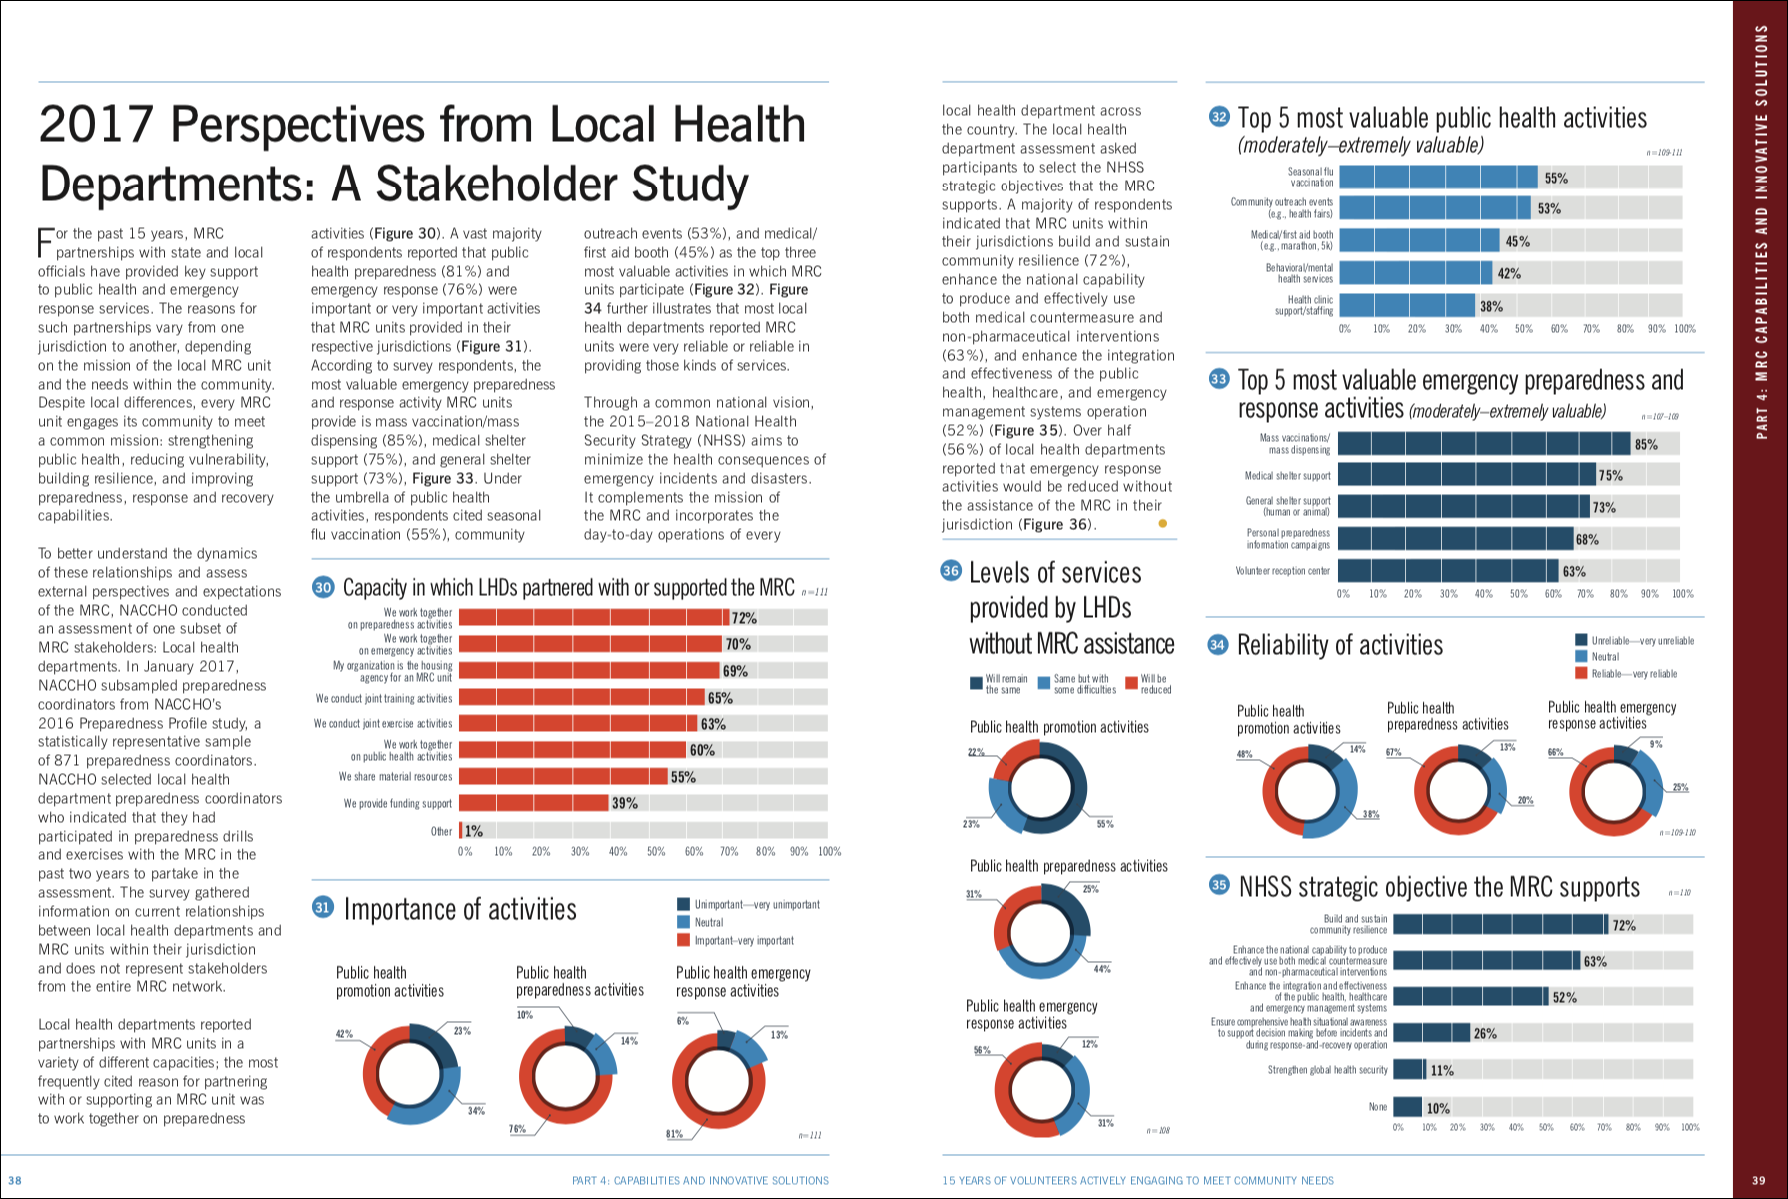 2017 Perspectives from Local Departments: A Stakeholder Study